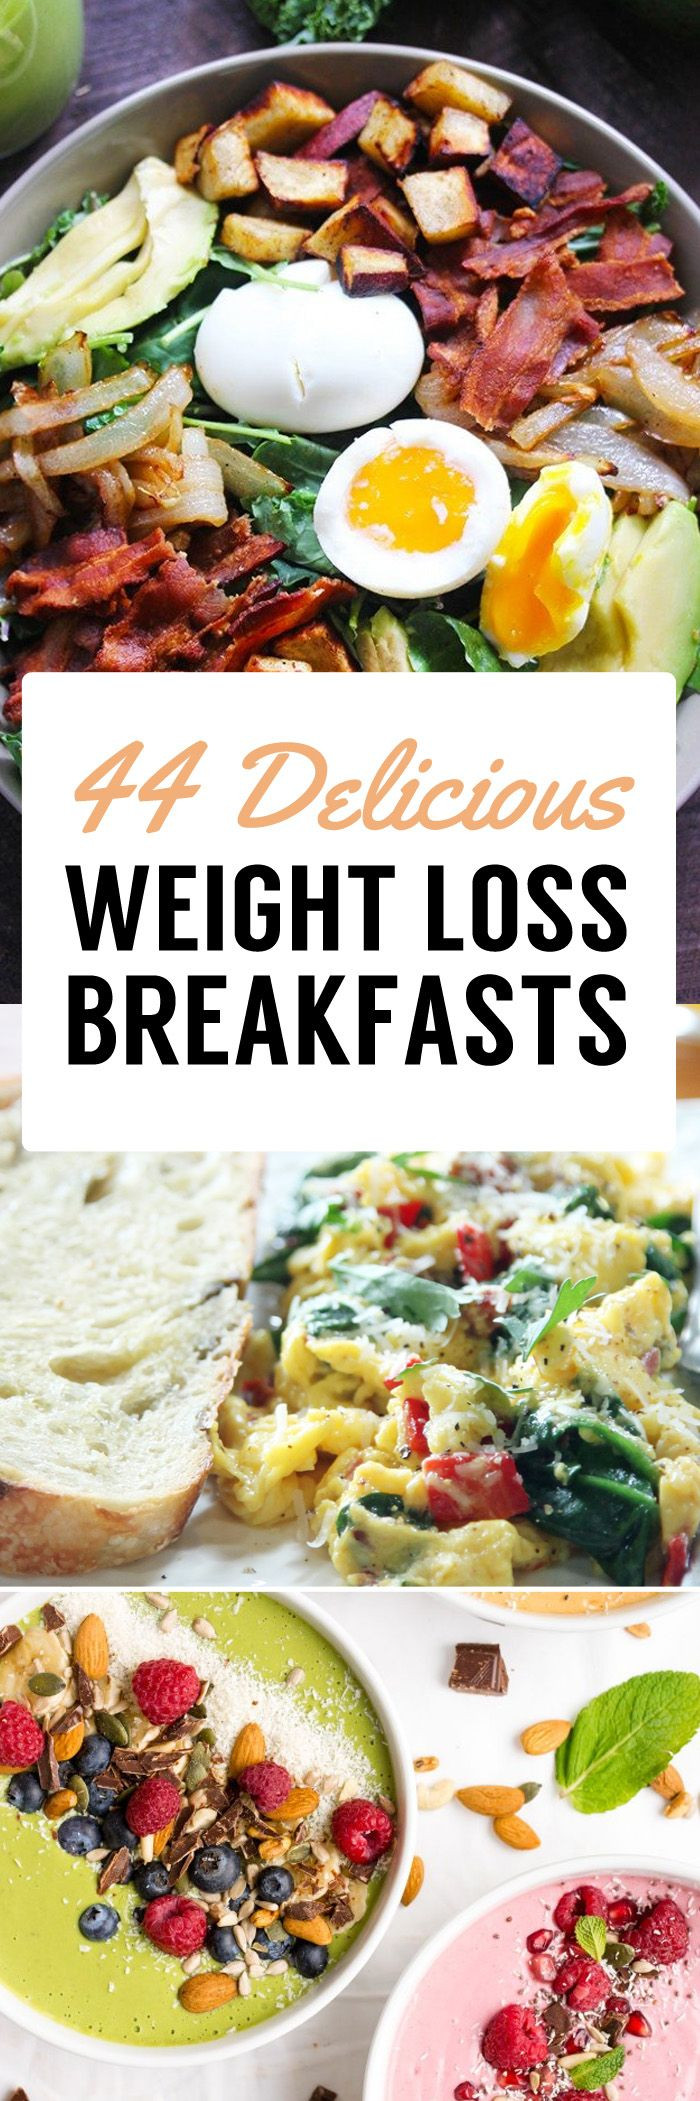 Healthy Recipes For Two Weight Loss  44 Weight Loss Breakfast Recipes To Jumpstart Your Fat